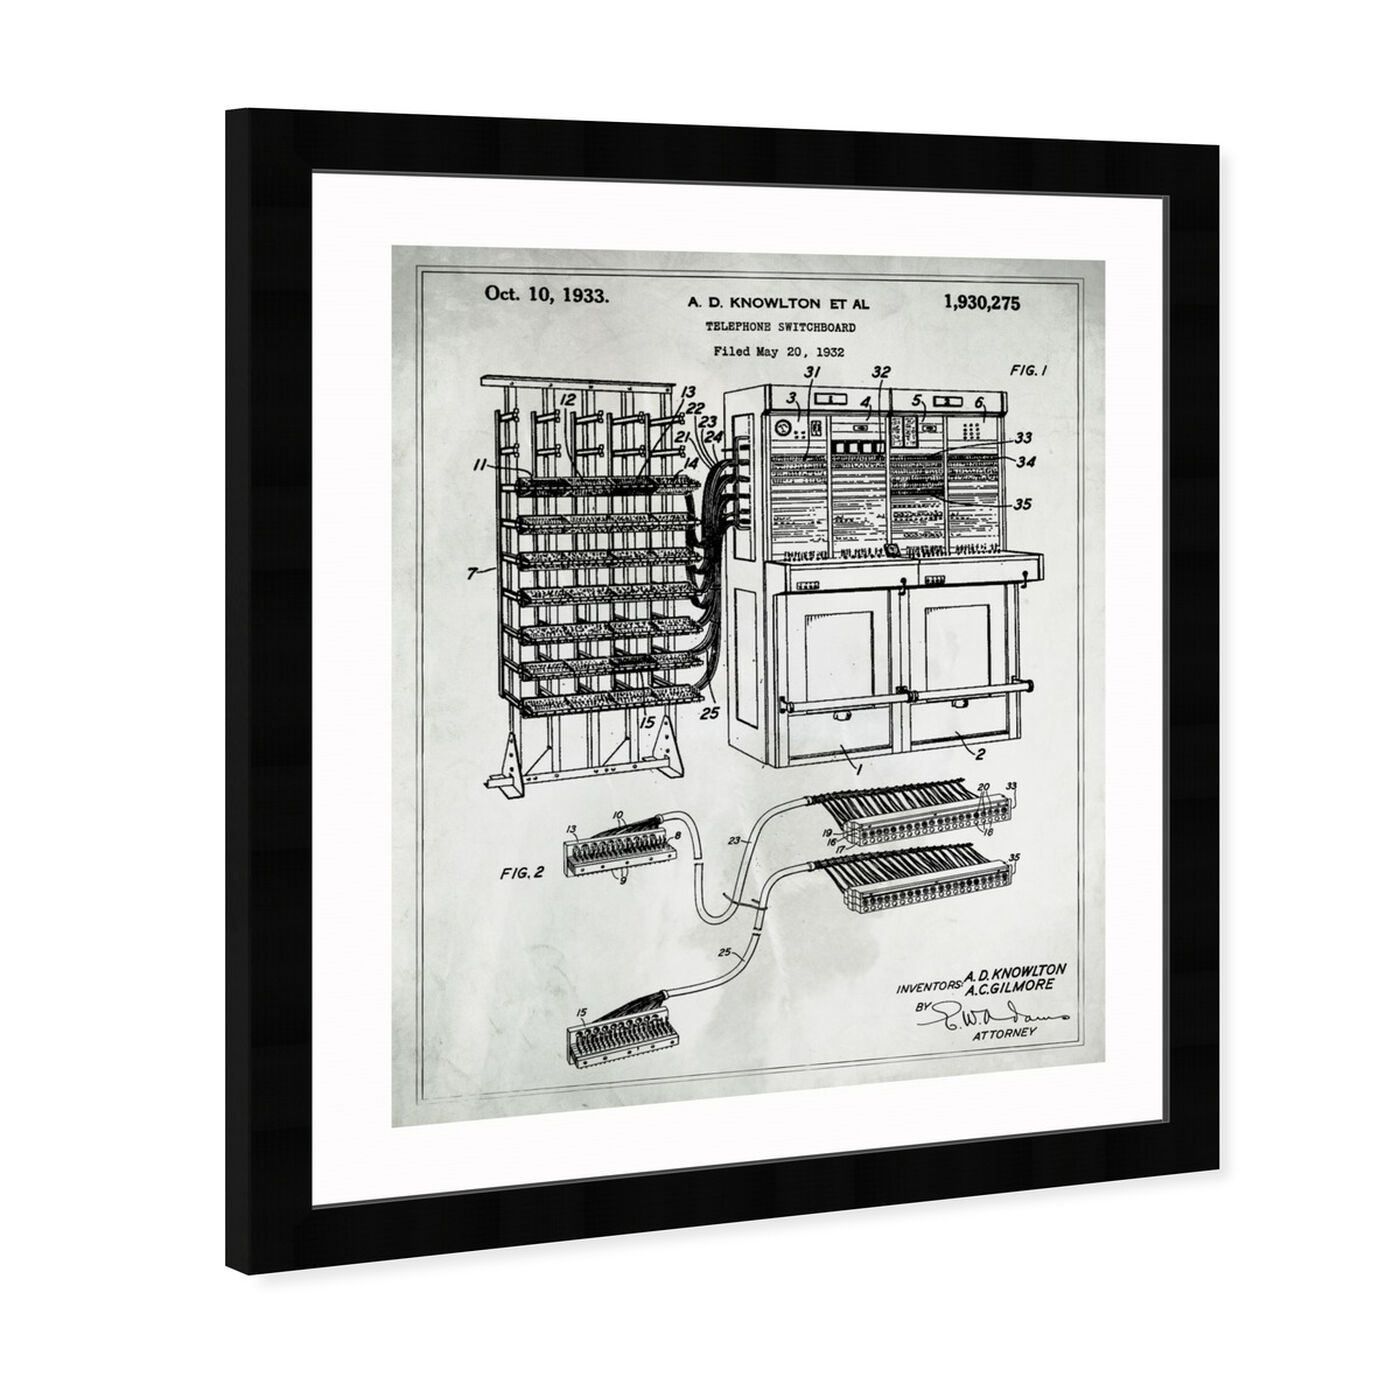 Angled view of Telephone Switchboard 1933 featuring symbols and objects and scientist art.